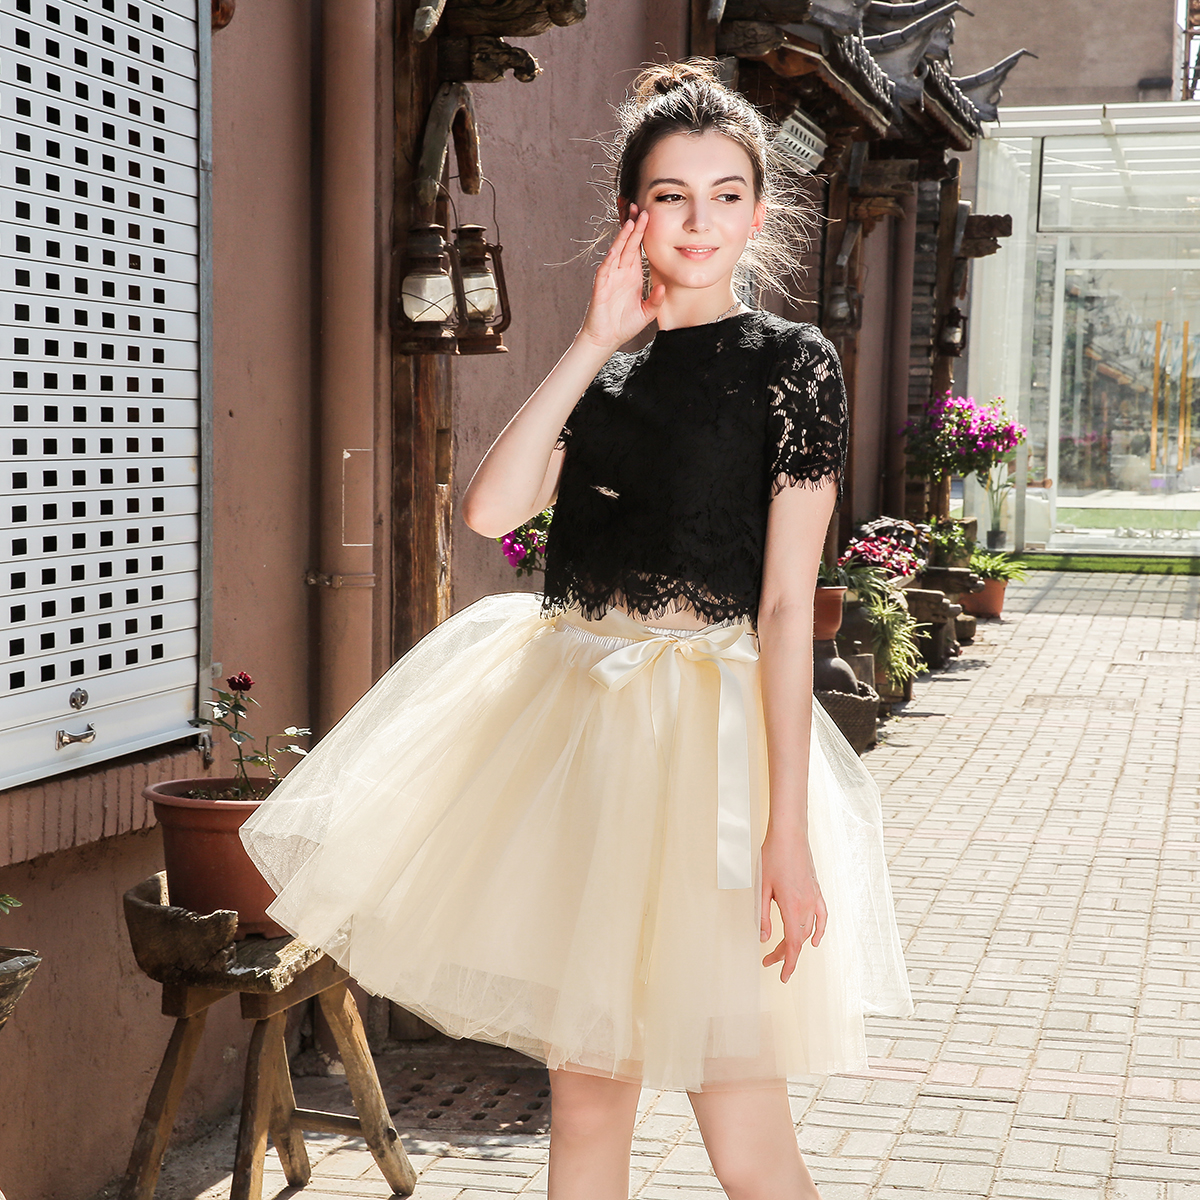 Skirts Womens 7 Layers Midi Tulle Skirt Fashion Tutu Skirts Women Ball Gown Party Petticoat 2020 Lolita Faldas Saia